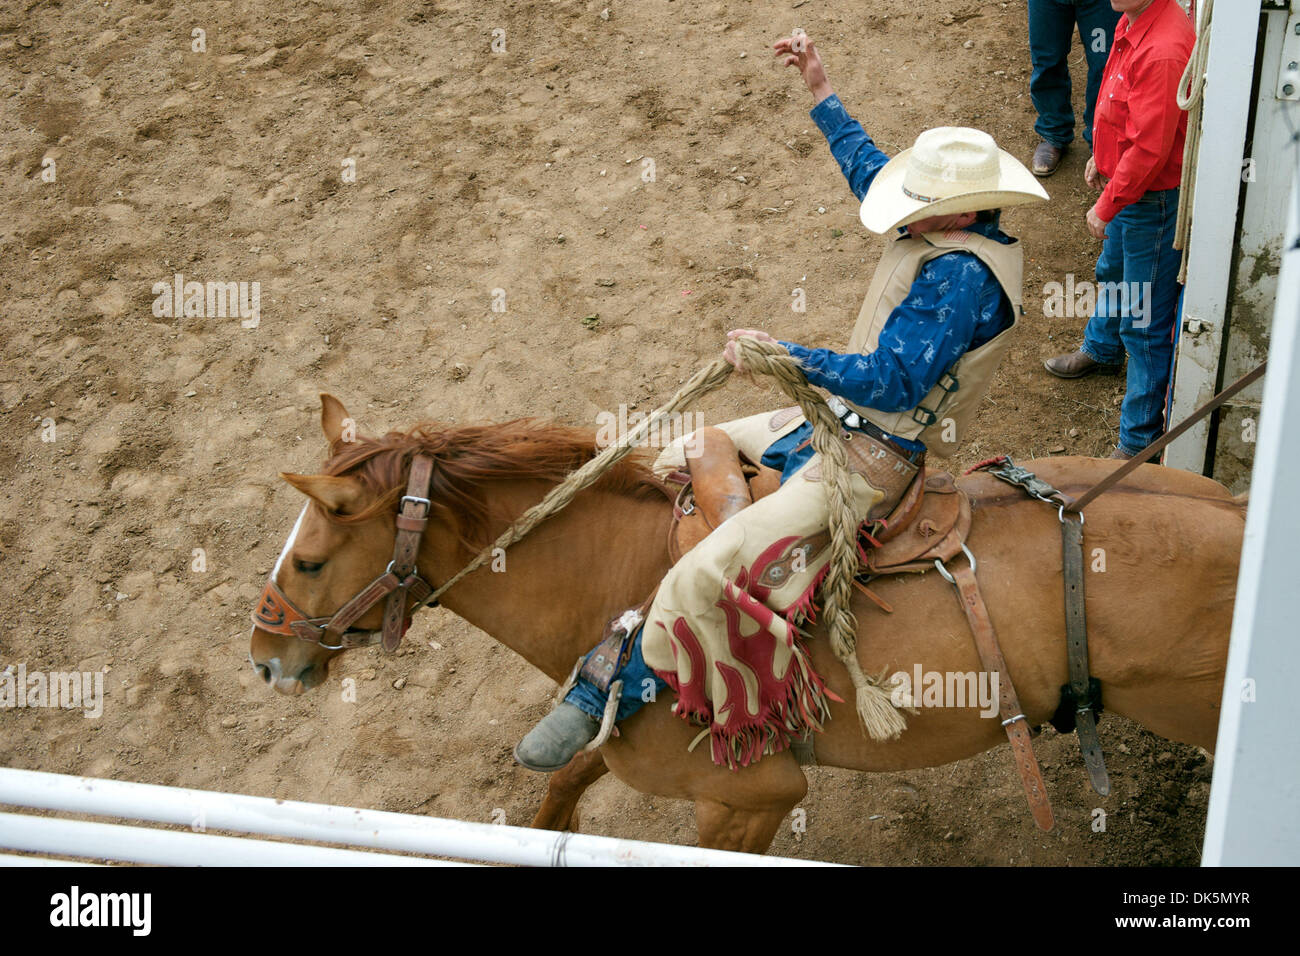 May 8, 2011 - Sonora, California, U.S - Robby Hacker of Battle Mountain, NV rides Excessive Force out of the chute at the Mother Lode Round-Up in Sonora, CA. (Credit Image: © Matt Cohen/Southcreek Global/ZUMAPRESS.com) - Stock Image